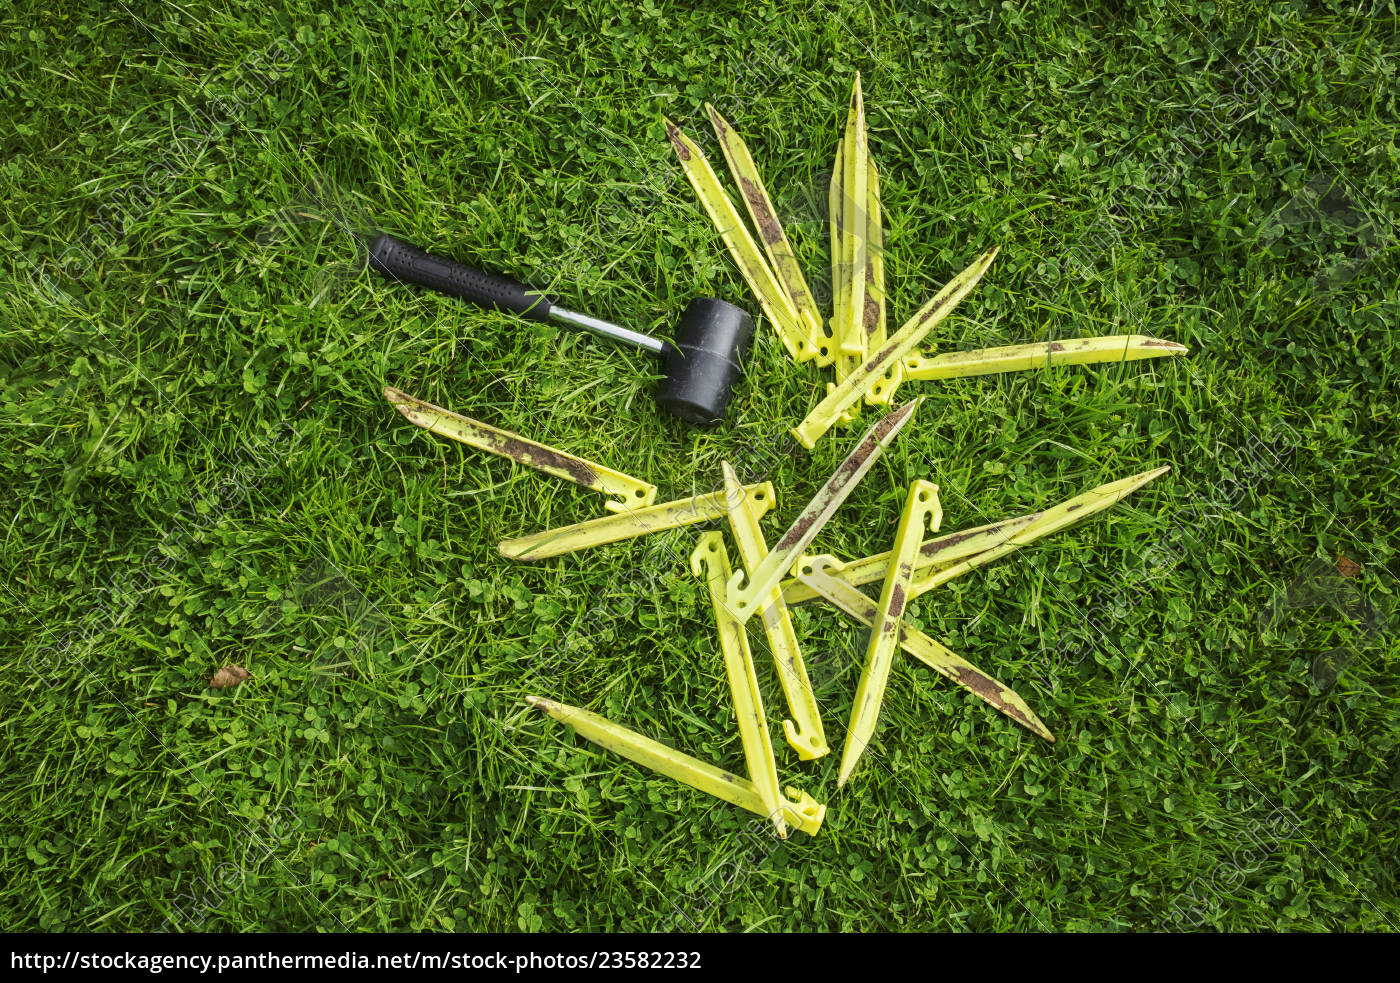 a, mallet, and, yellow, plastic, pegs, - 23582232